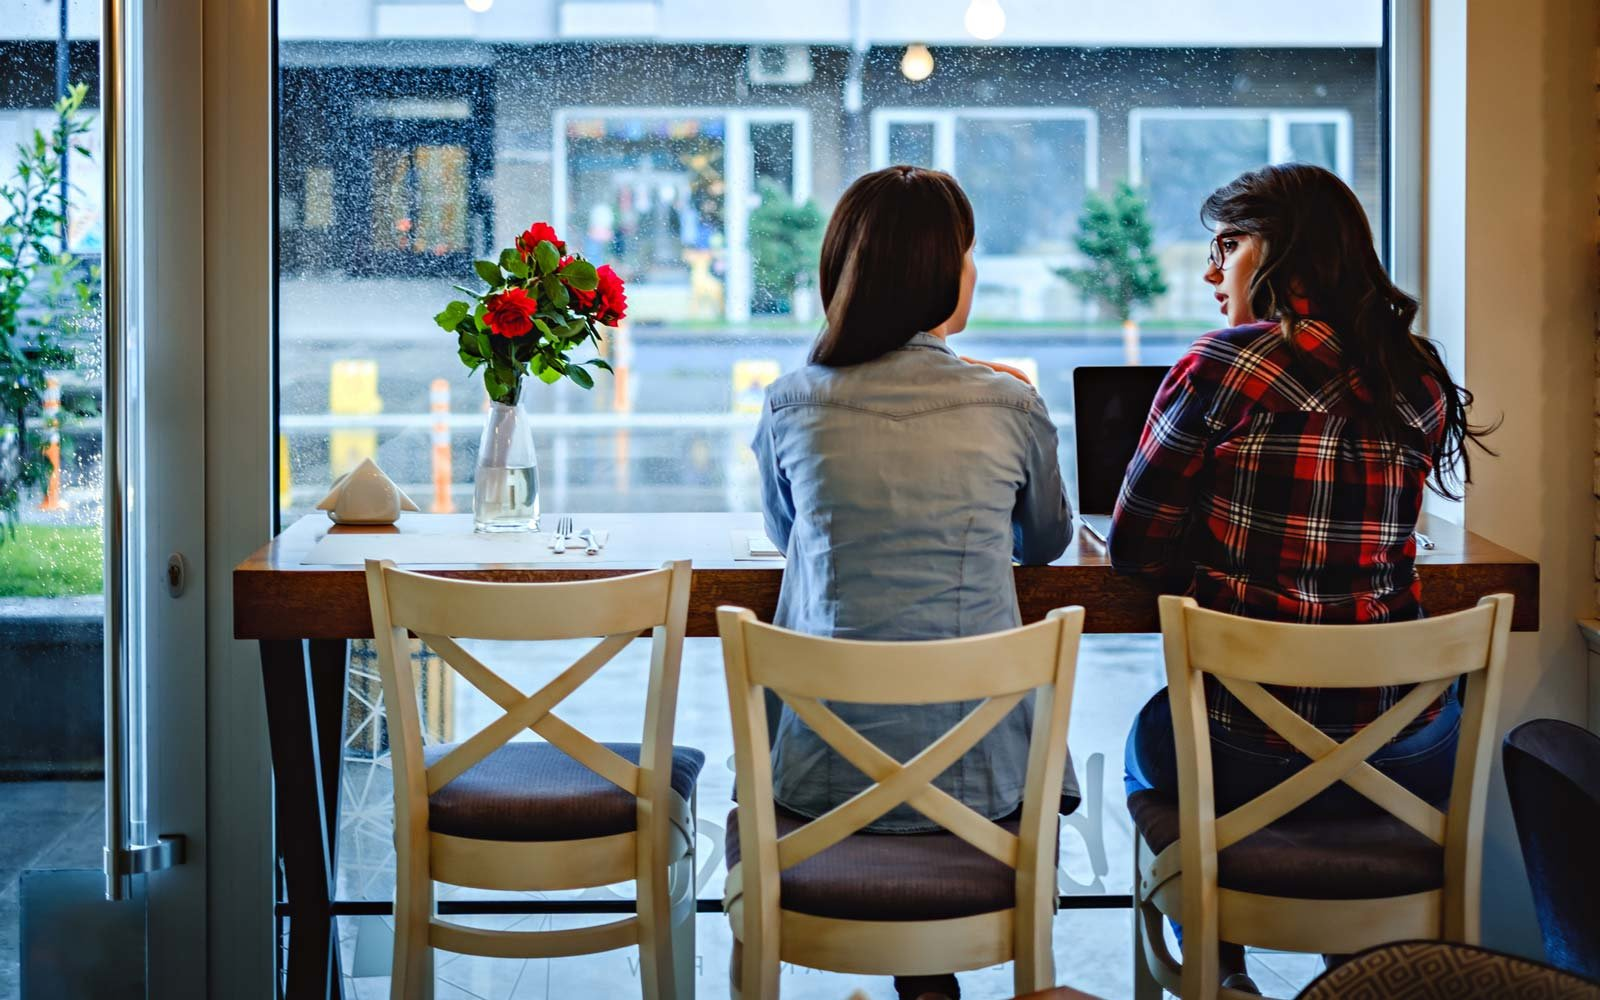 Bad Weather Leads to Bad Restaurant Reviews, Study Says